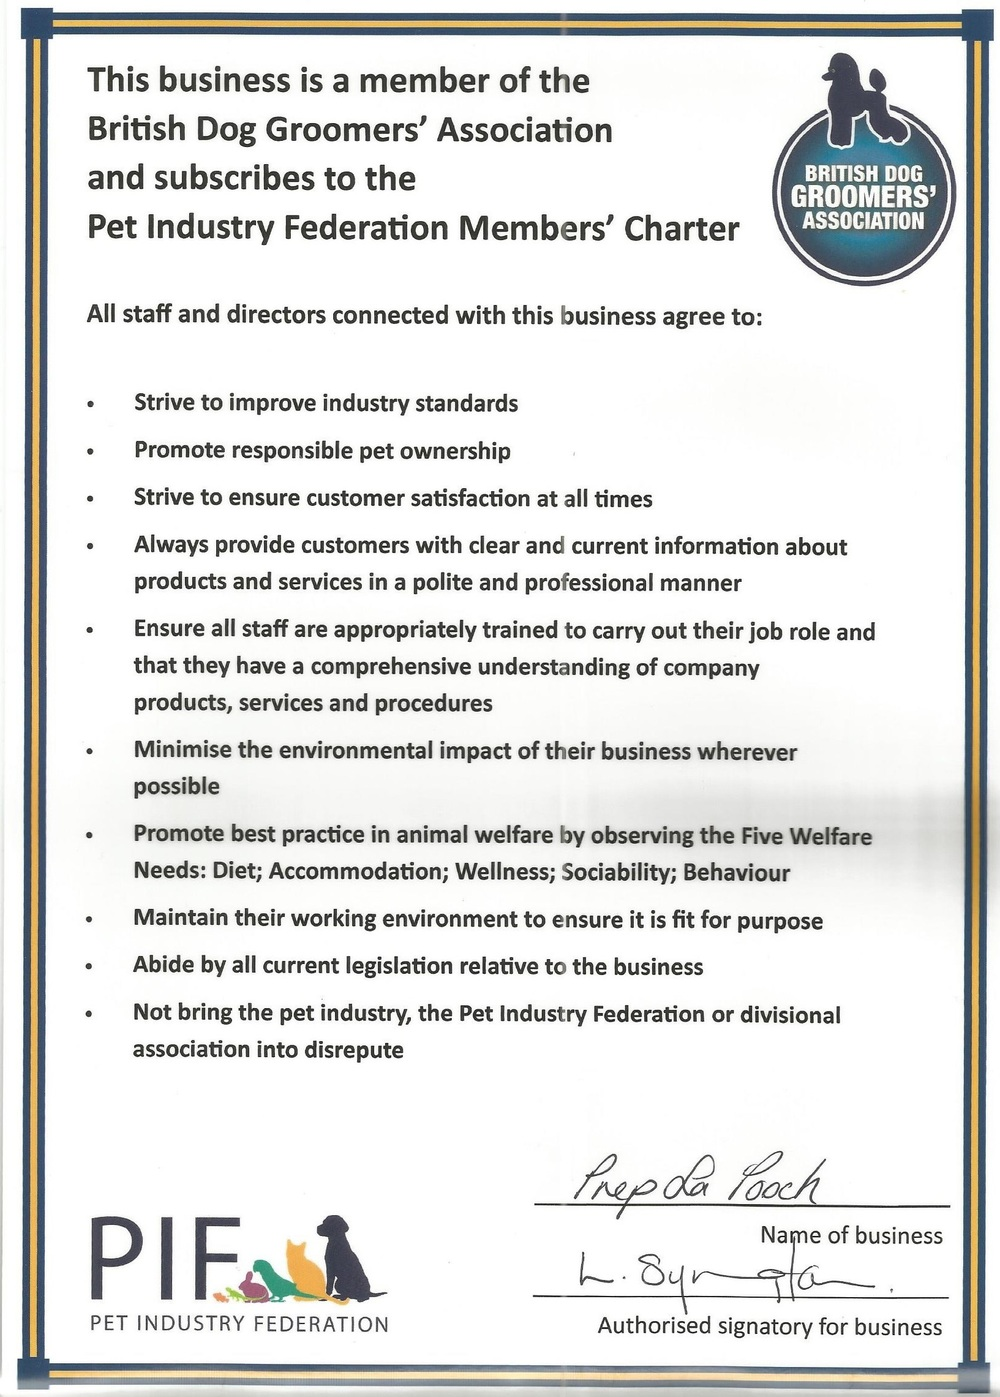 Member of British Dog Groomers' Association certificate